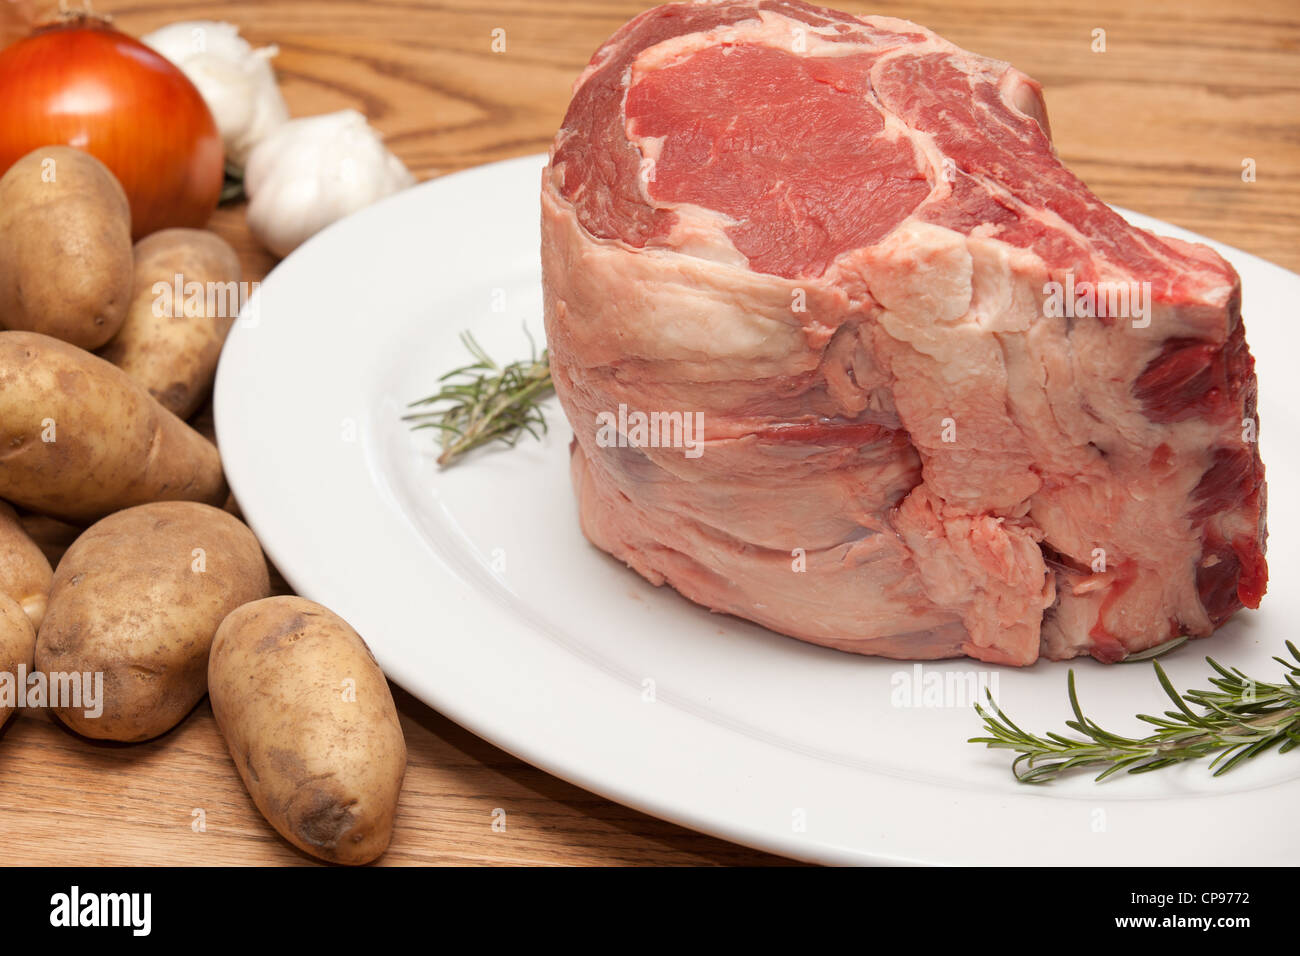 Horizontal view of a large uncooked prime rib roast along with garnishes of herbs, garlic and potatoes. Stock Photo